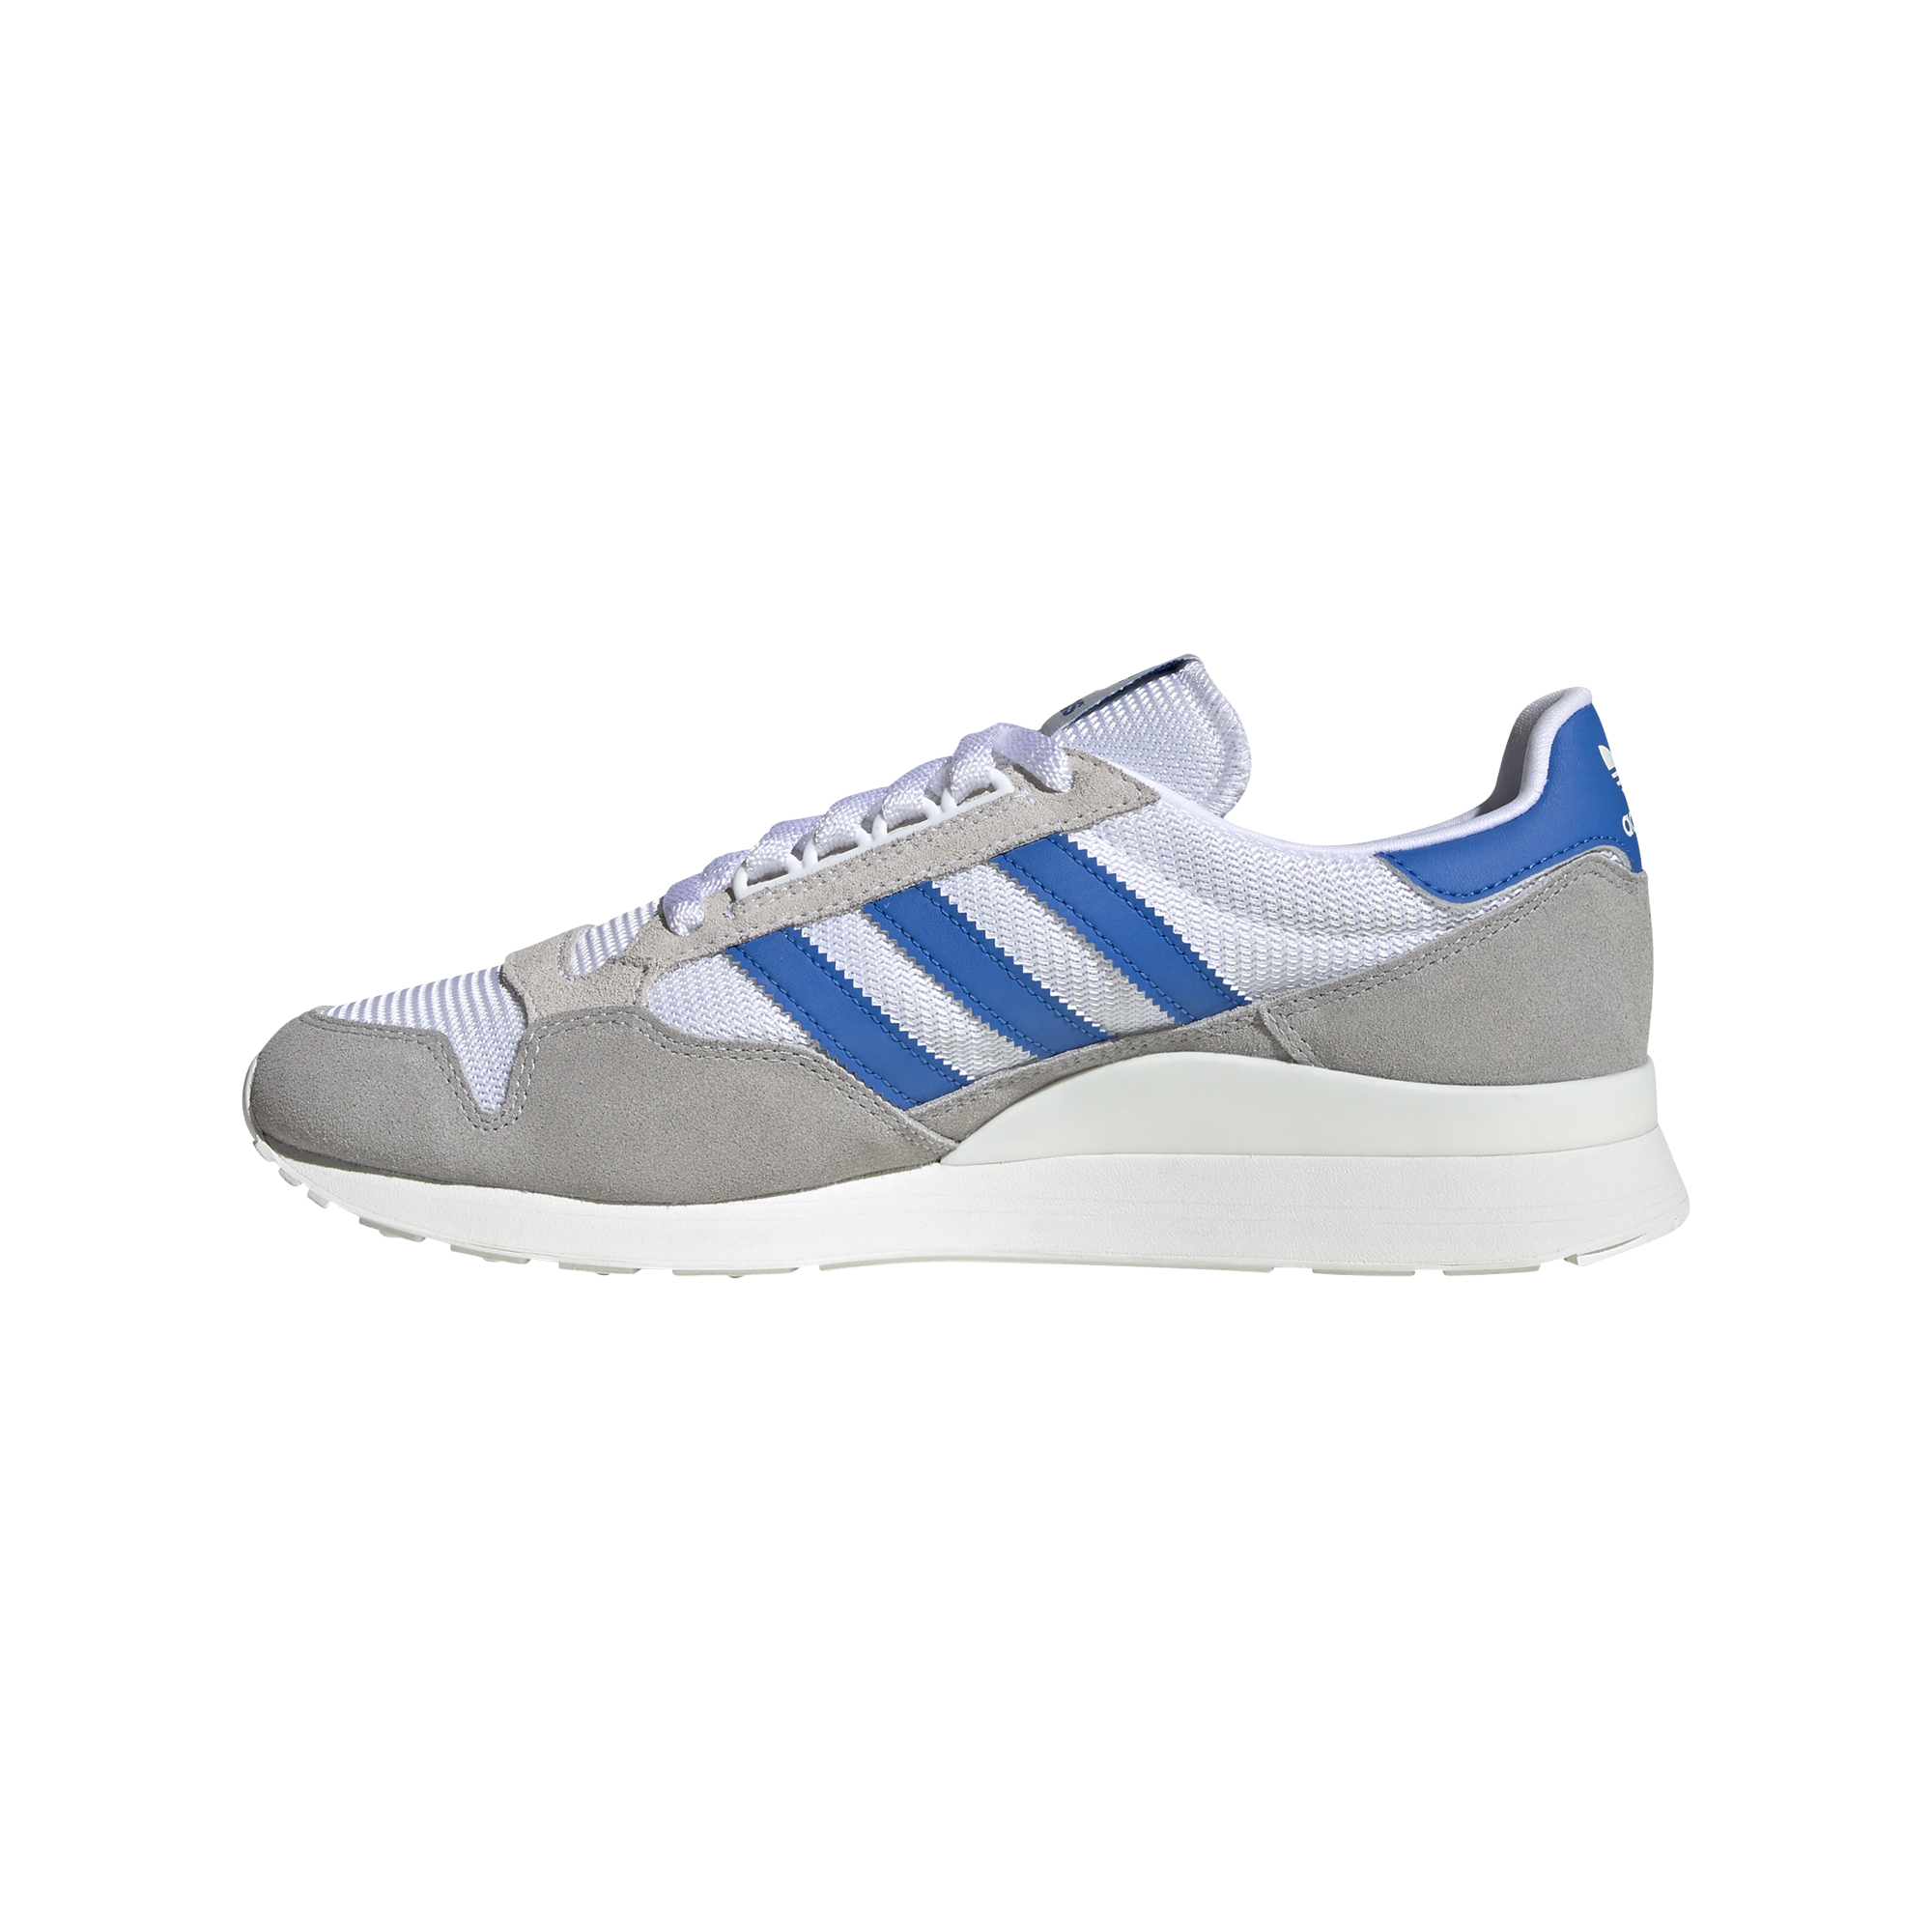 adidas ZX 500 Ftw White/ Blue Bird/ Off White EUR 46